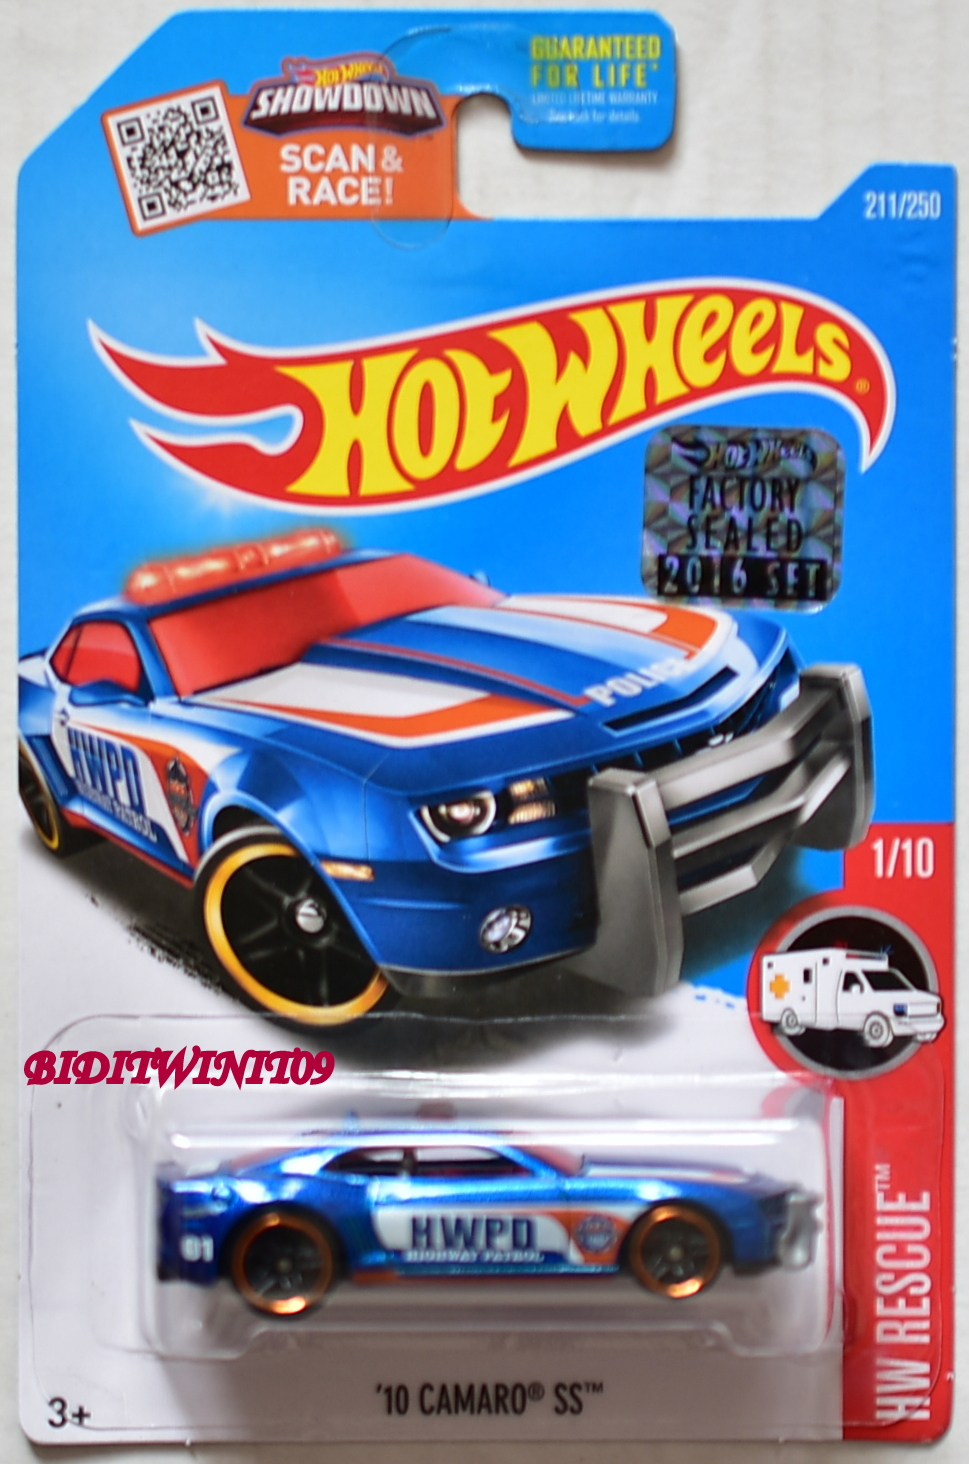 HOT WHEELS 2016 HW RESCUE '10 CAMARO SS #1/10 BLUE FACTORY SEALED